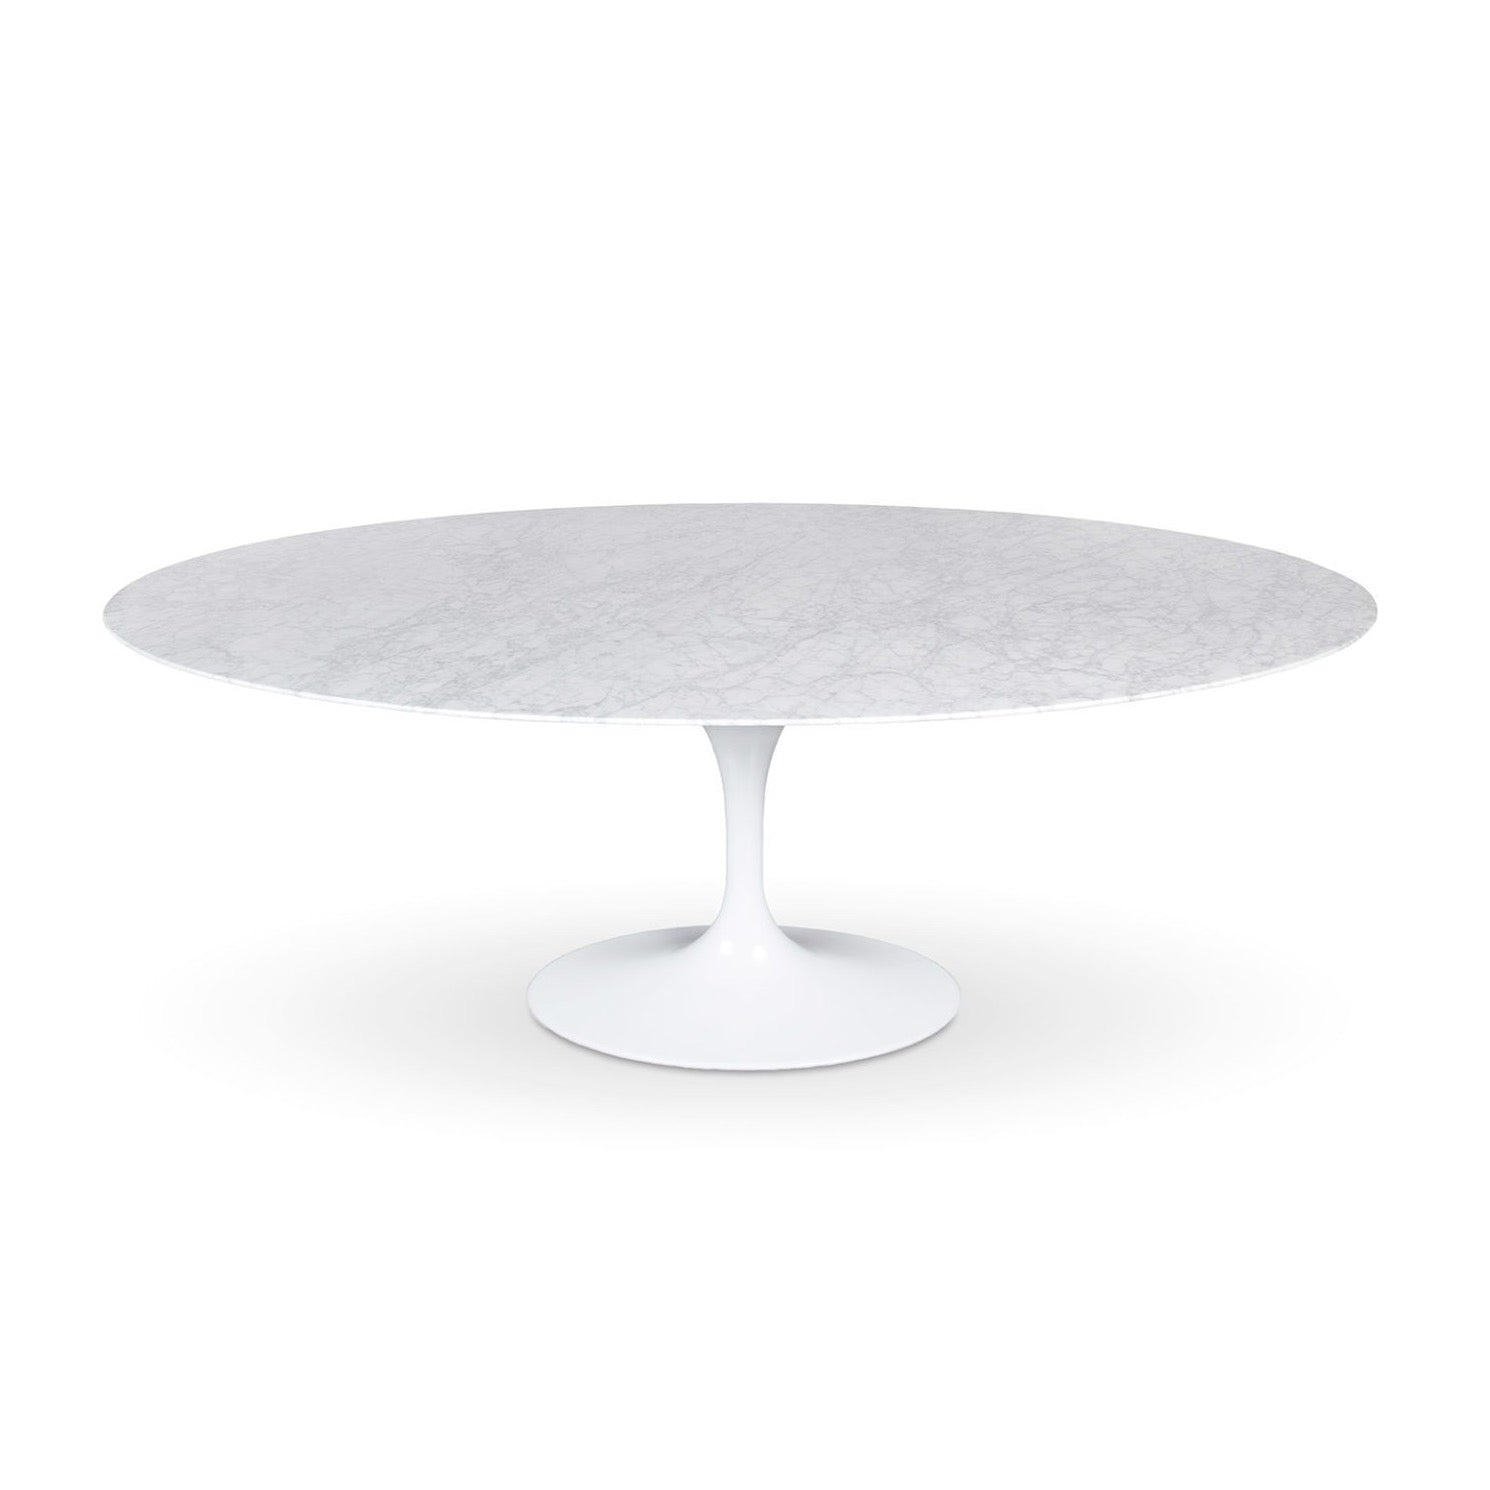 Flute Oval Dining Table with Marble Top